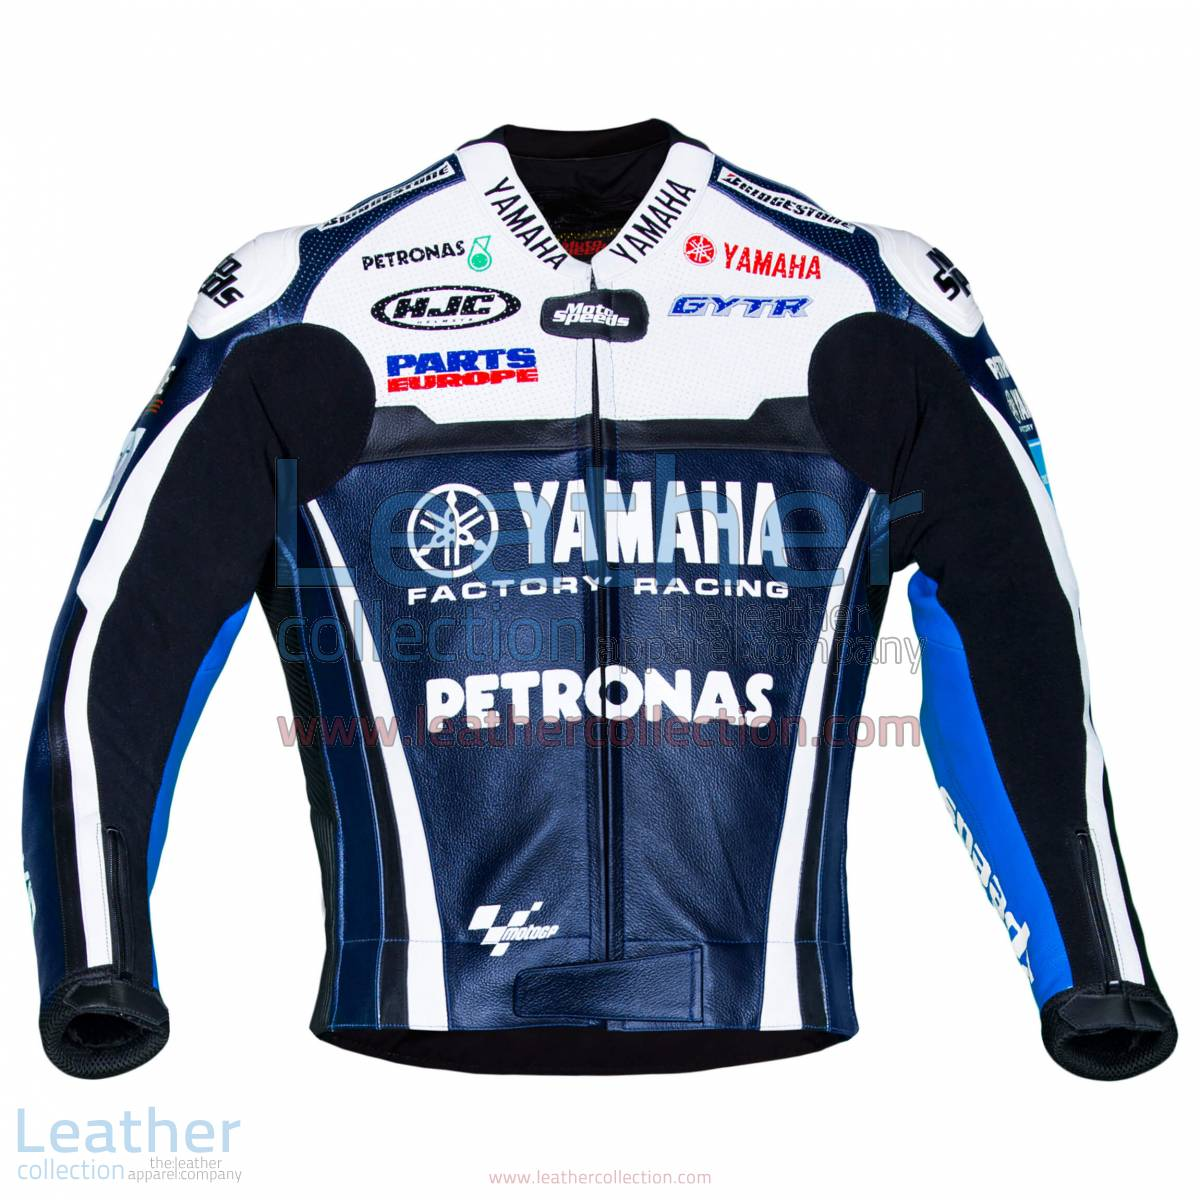 Ben Spies Yamaha 2011 MotoGP Leather Jacket | Ben Spies Yamaha 2011 MotoGP Leather Jacket